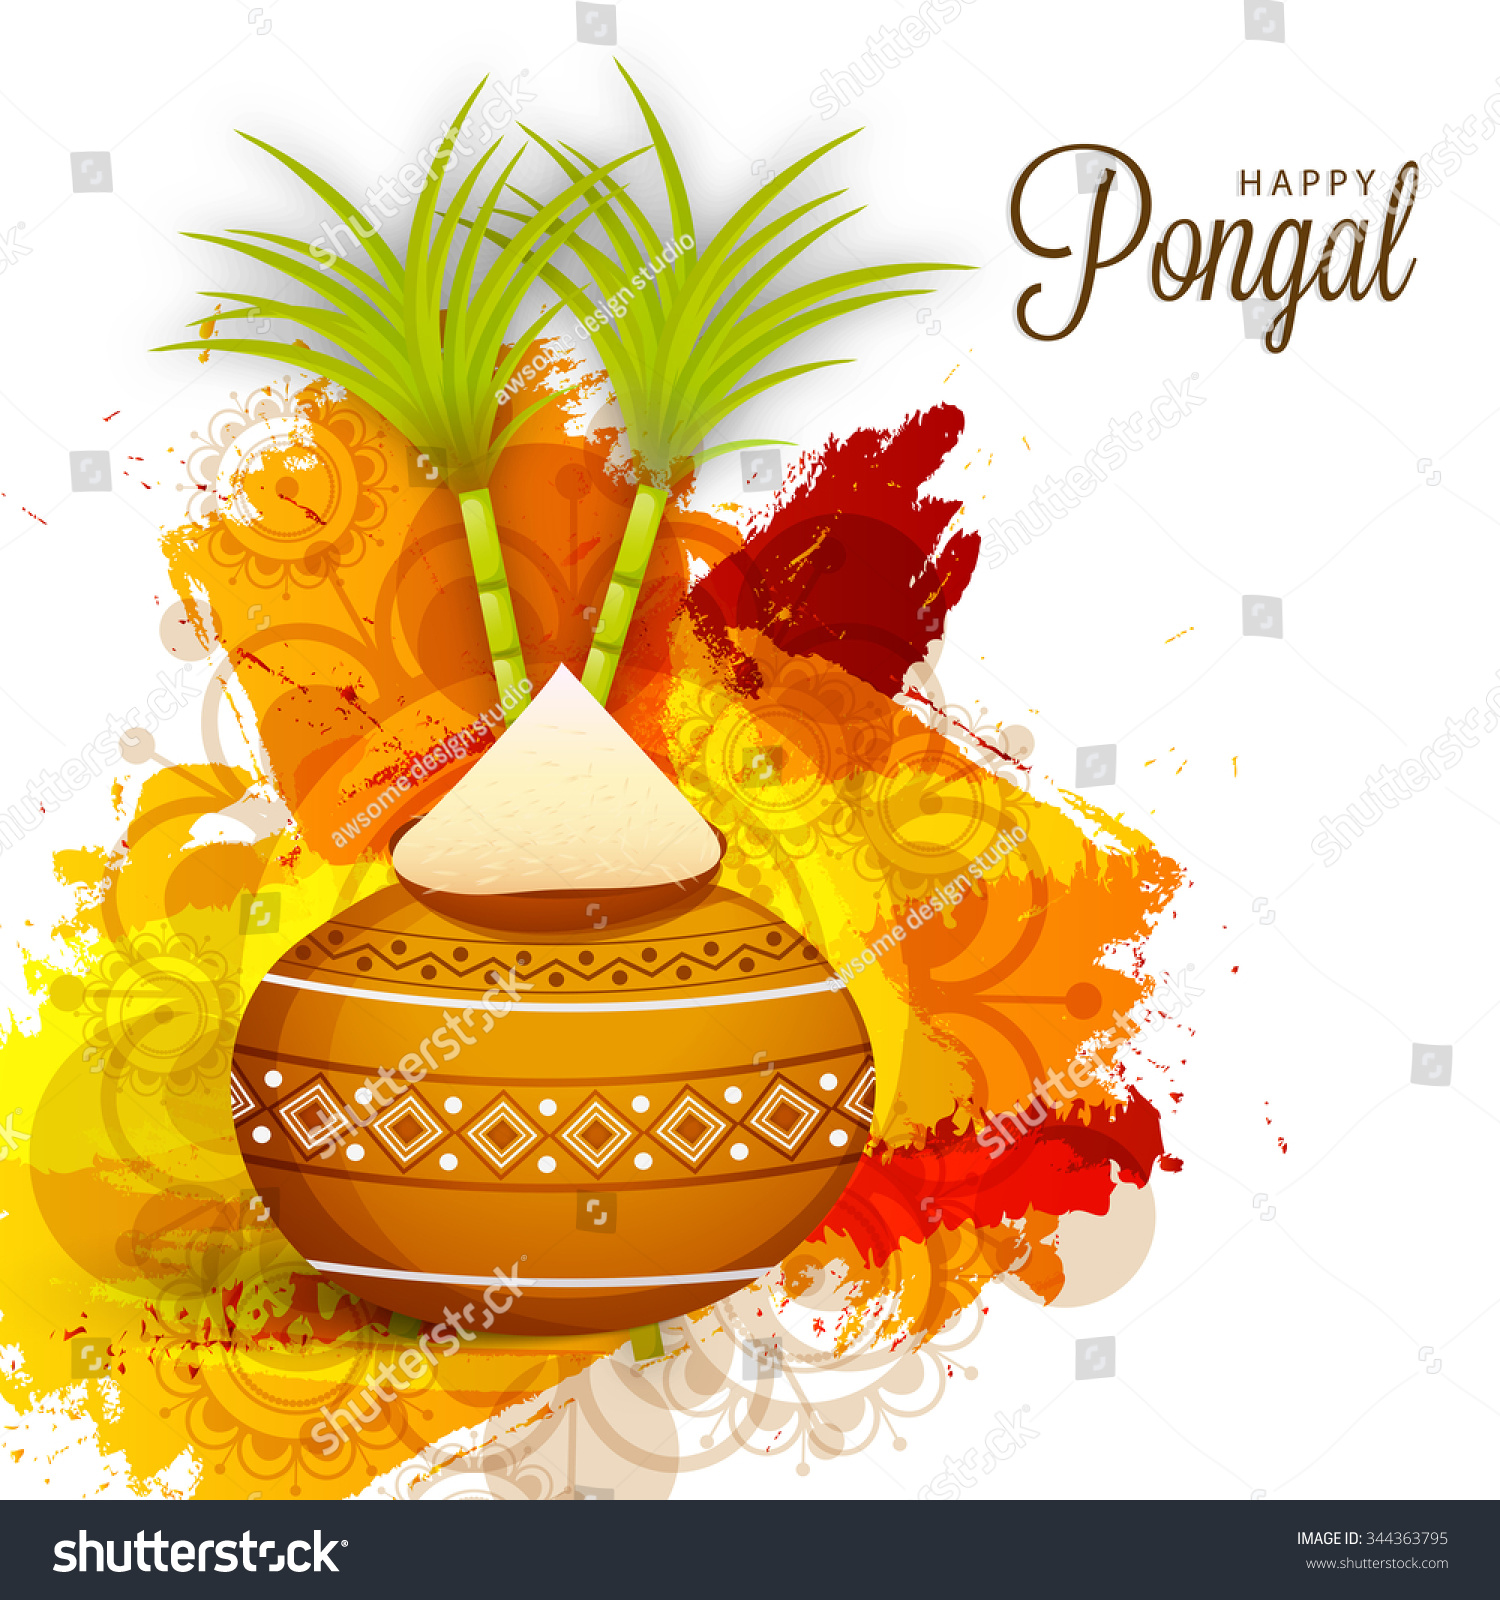 Vector illustration happy pongal greeting card stock vector 2018 vector illustration of happy pongal greeting card m4hsunfo